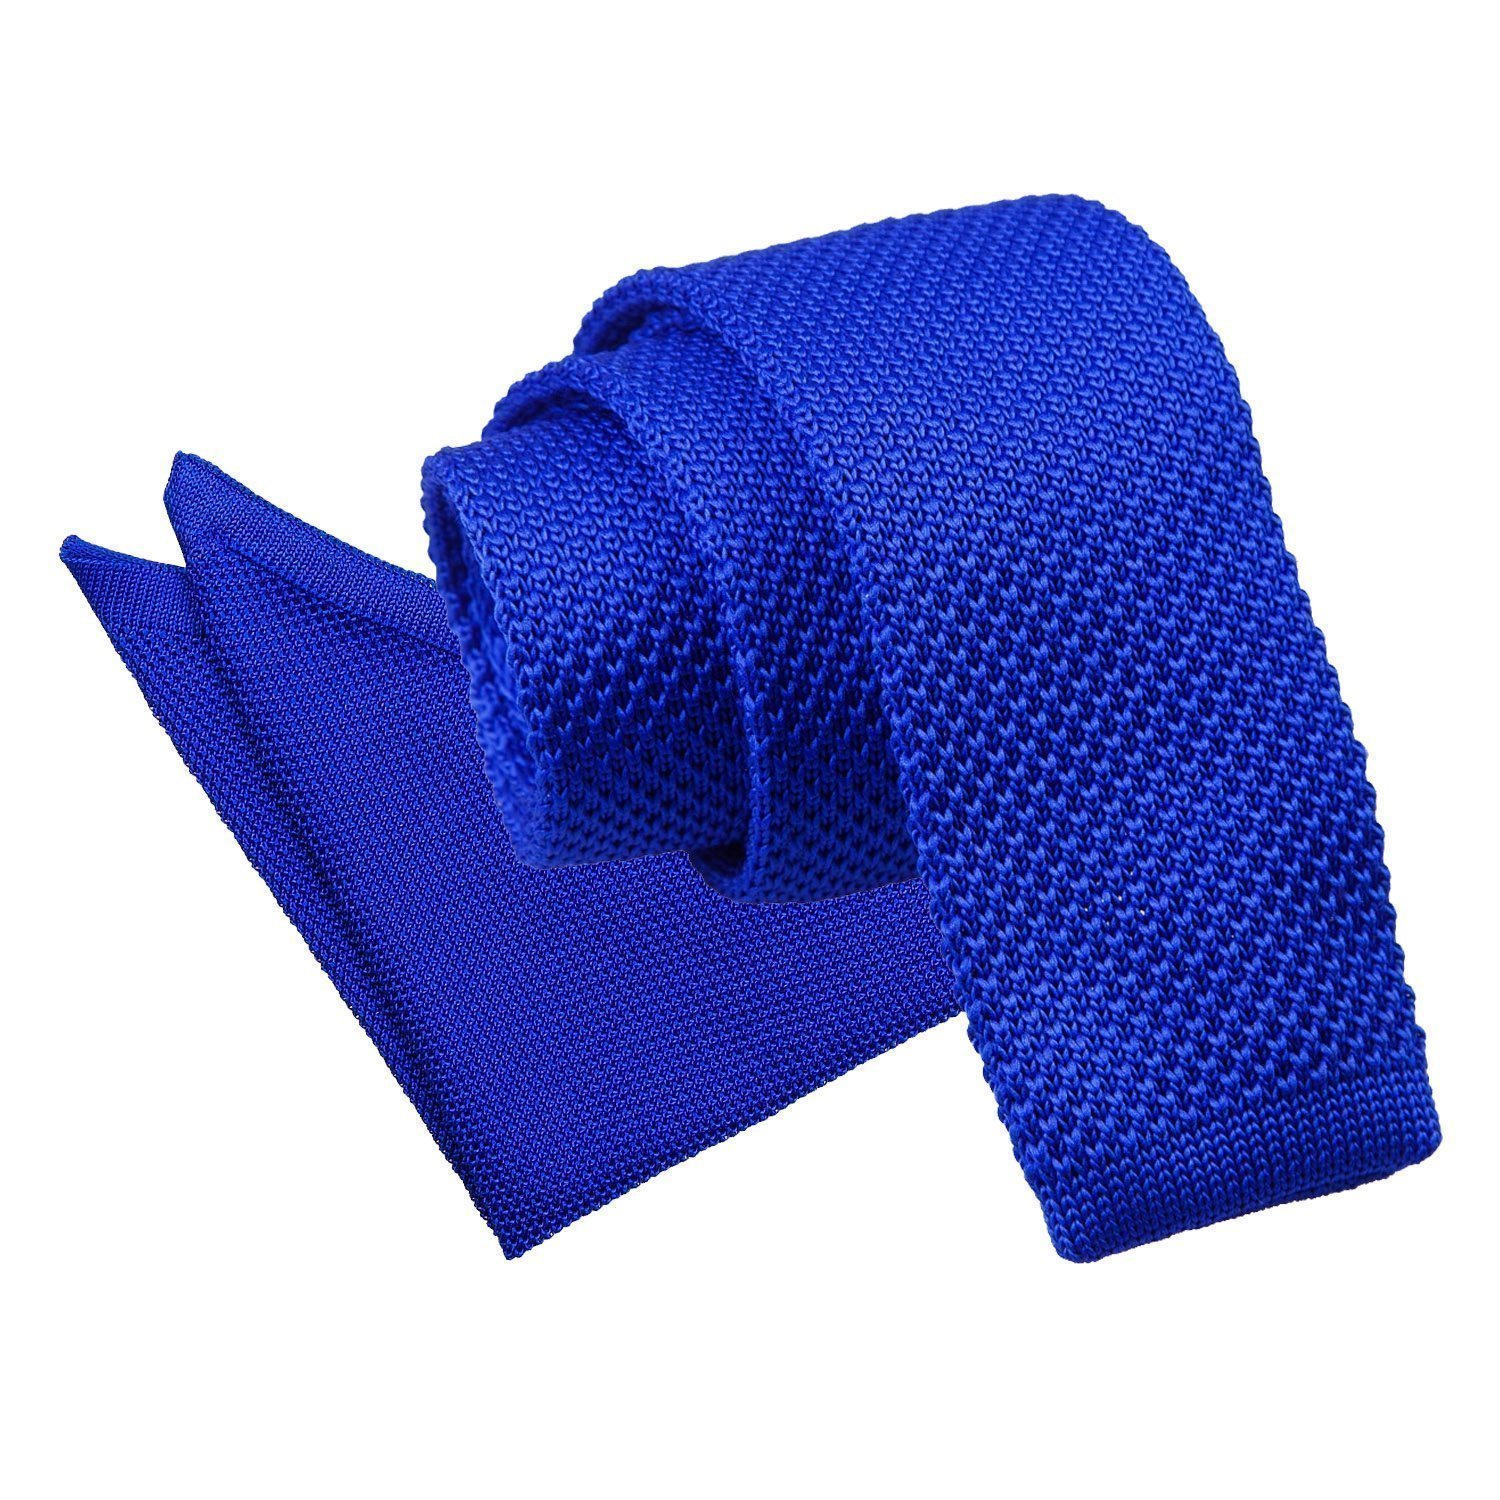 2982204d6c4f Details about DQT Knit Knitted Plain Royal Blue Casual Men's Skinny Tie  Handkerchief Set